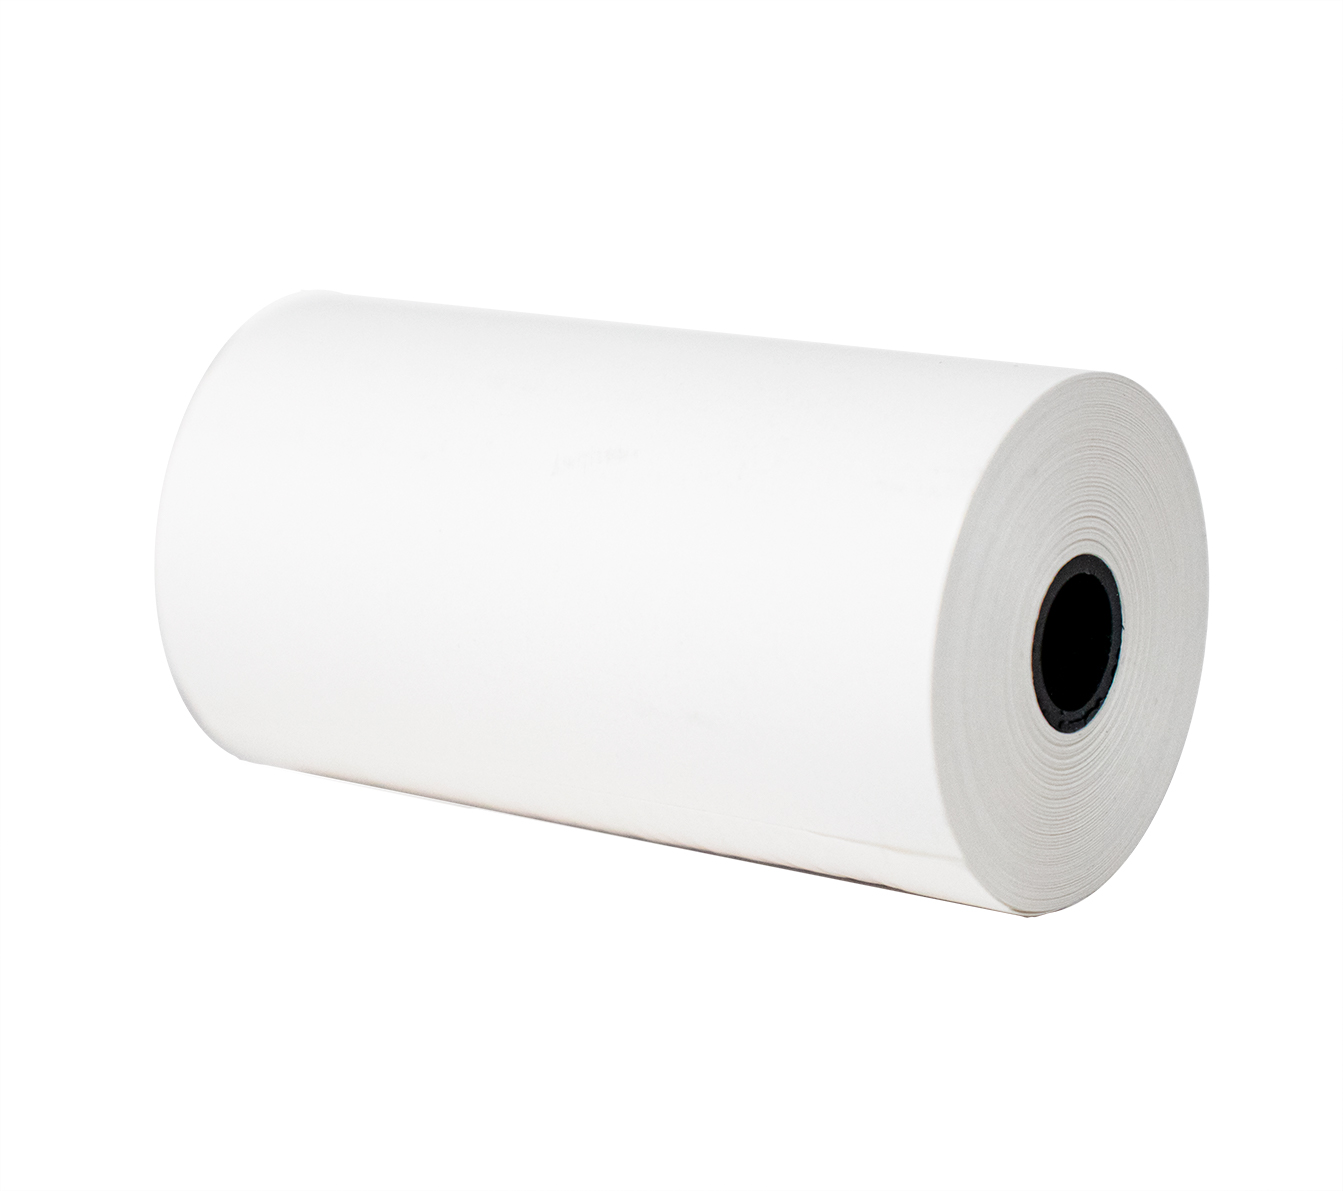 Indutherm Printer Paper Roll